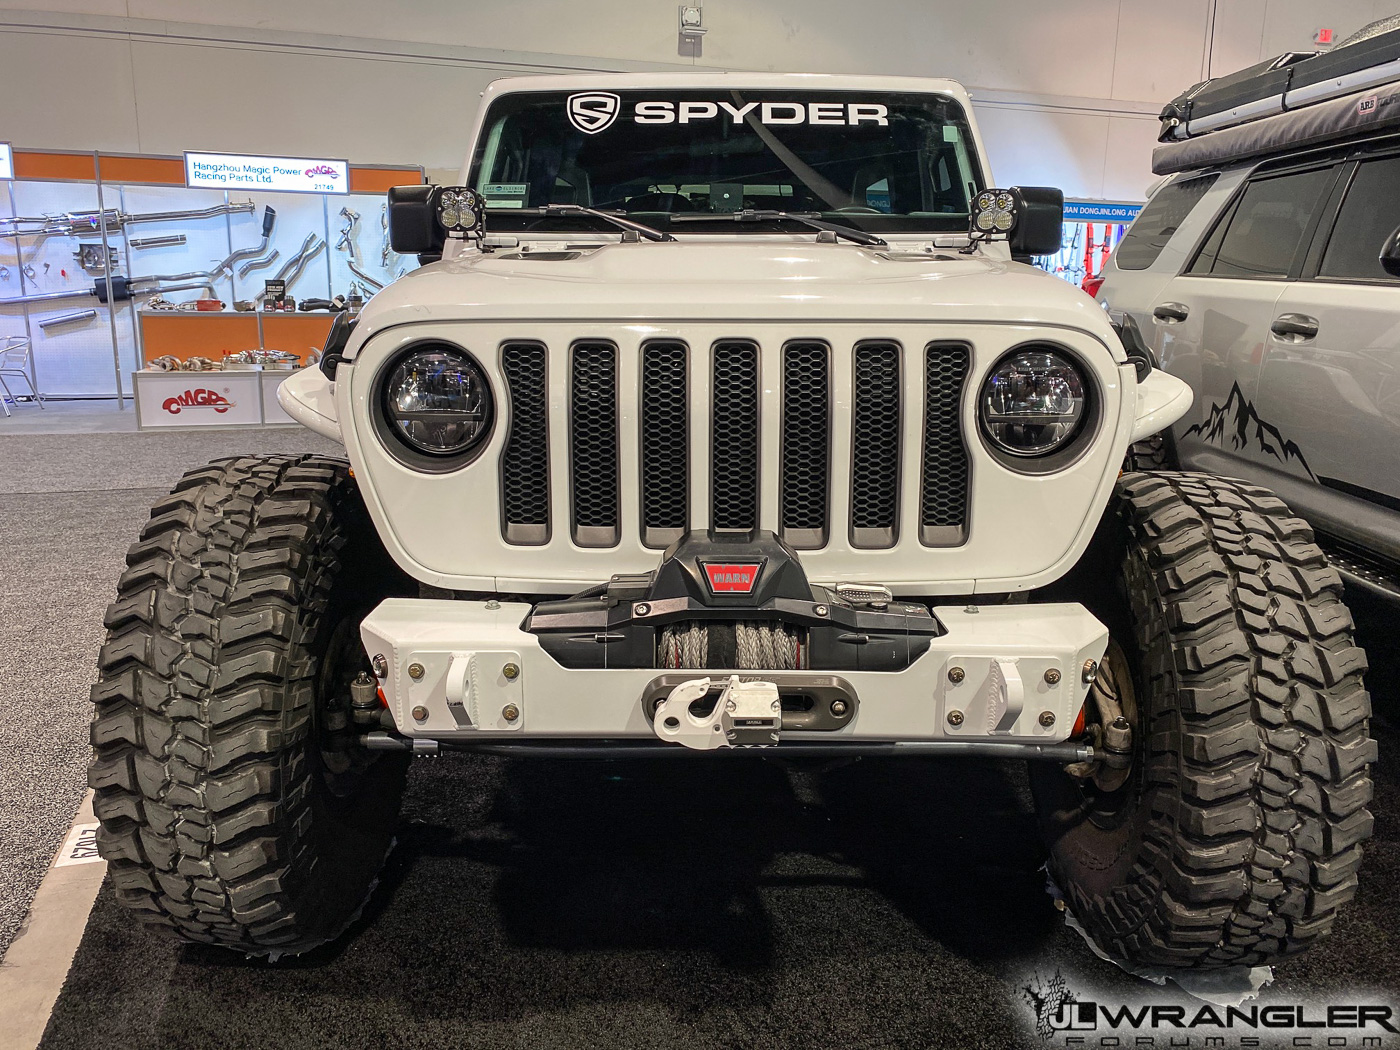 Spyder-JLU-Jeep-Wrangler-Build-SEMA-2019-1.jpg